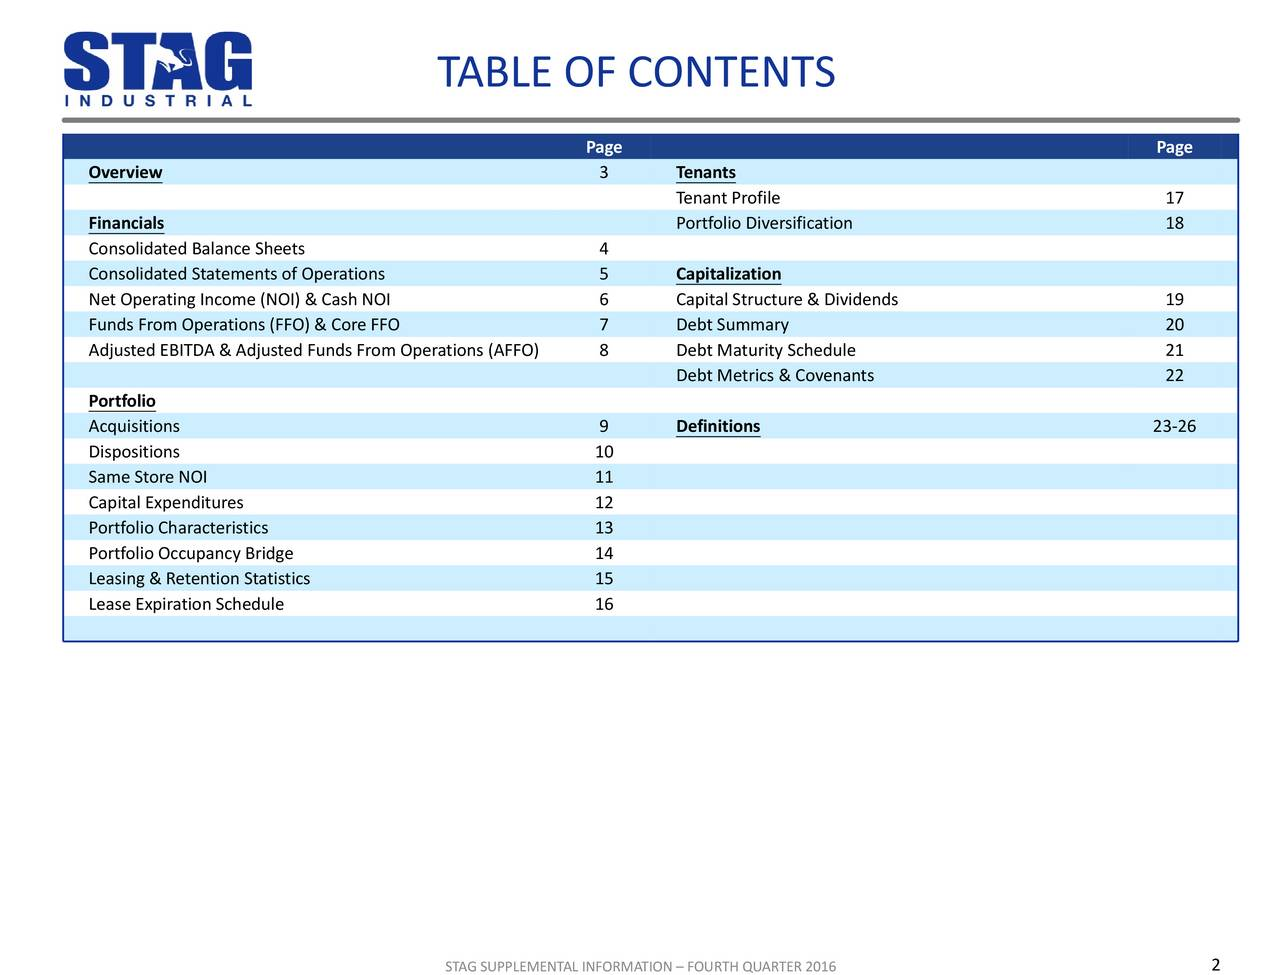 Page Page Overview 3 Tenants Tenant Profile 17 Financials Portfolio Diversification 18 Consolidated Balance Sheets 4 Consolidated Statements of Operations 5 Capitalization Net Operating Income (NOI) & Cash NOI 6 Capital Structure & Dividends 19 Funds From Operations (FFO) & Core FFO 7 Debt Summary 20 Adjusted EBITDA & Adjusted Funds From Operations (AFFO) 8 Debt Maturity Schedule 21 Debt Metrics & Covenants 22 Portfolio Acquisitions 9 Definitions 23-26 Dispositions 10 Same Store NOI 11 Capital Expenditures 12 Portfolio Characteristics 13 Portfolio Occupancy Bridge 14 Leasing & Retention Statistics 15 Lease Expiration Schedule 16